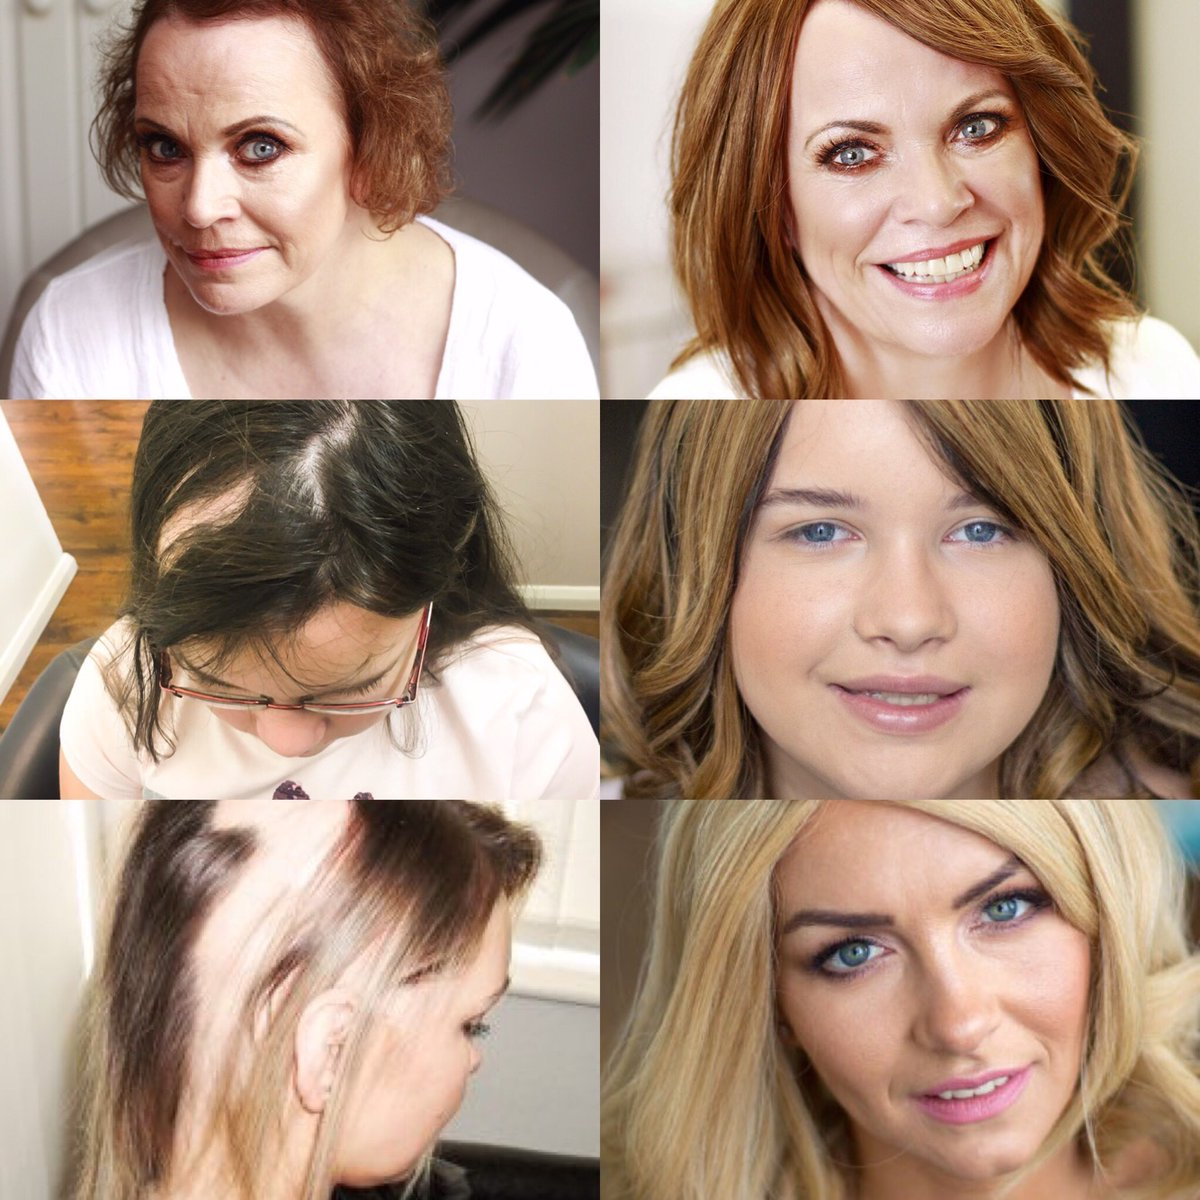 We love to see the transformation the Enhancer System makes to clients #hairloss #femalehairloss #hairsystem #hairlosssolution #hairlosstreatment #hairfall #alopecia #alopeciaareata #frontalfibrosingalopecia #alopeciatotalis #alopeciauniversalis #hairsolved #nofilter